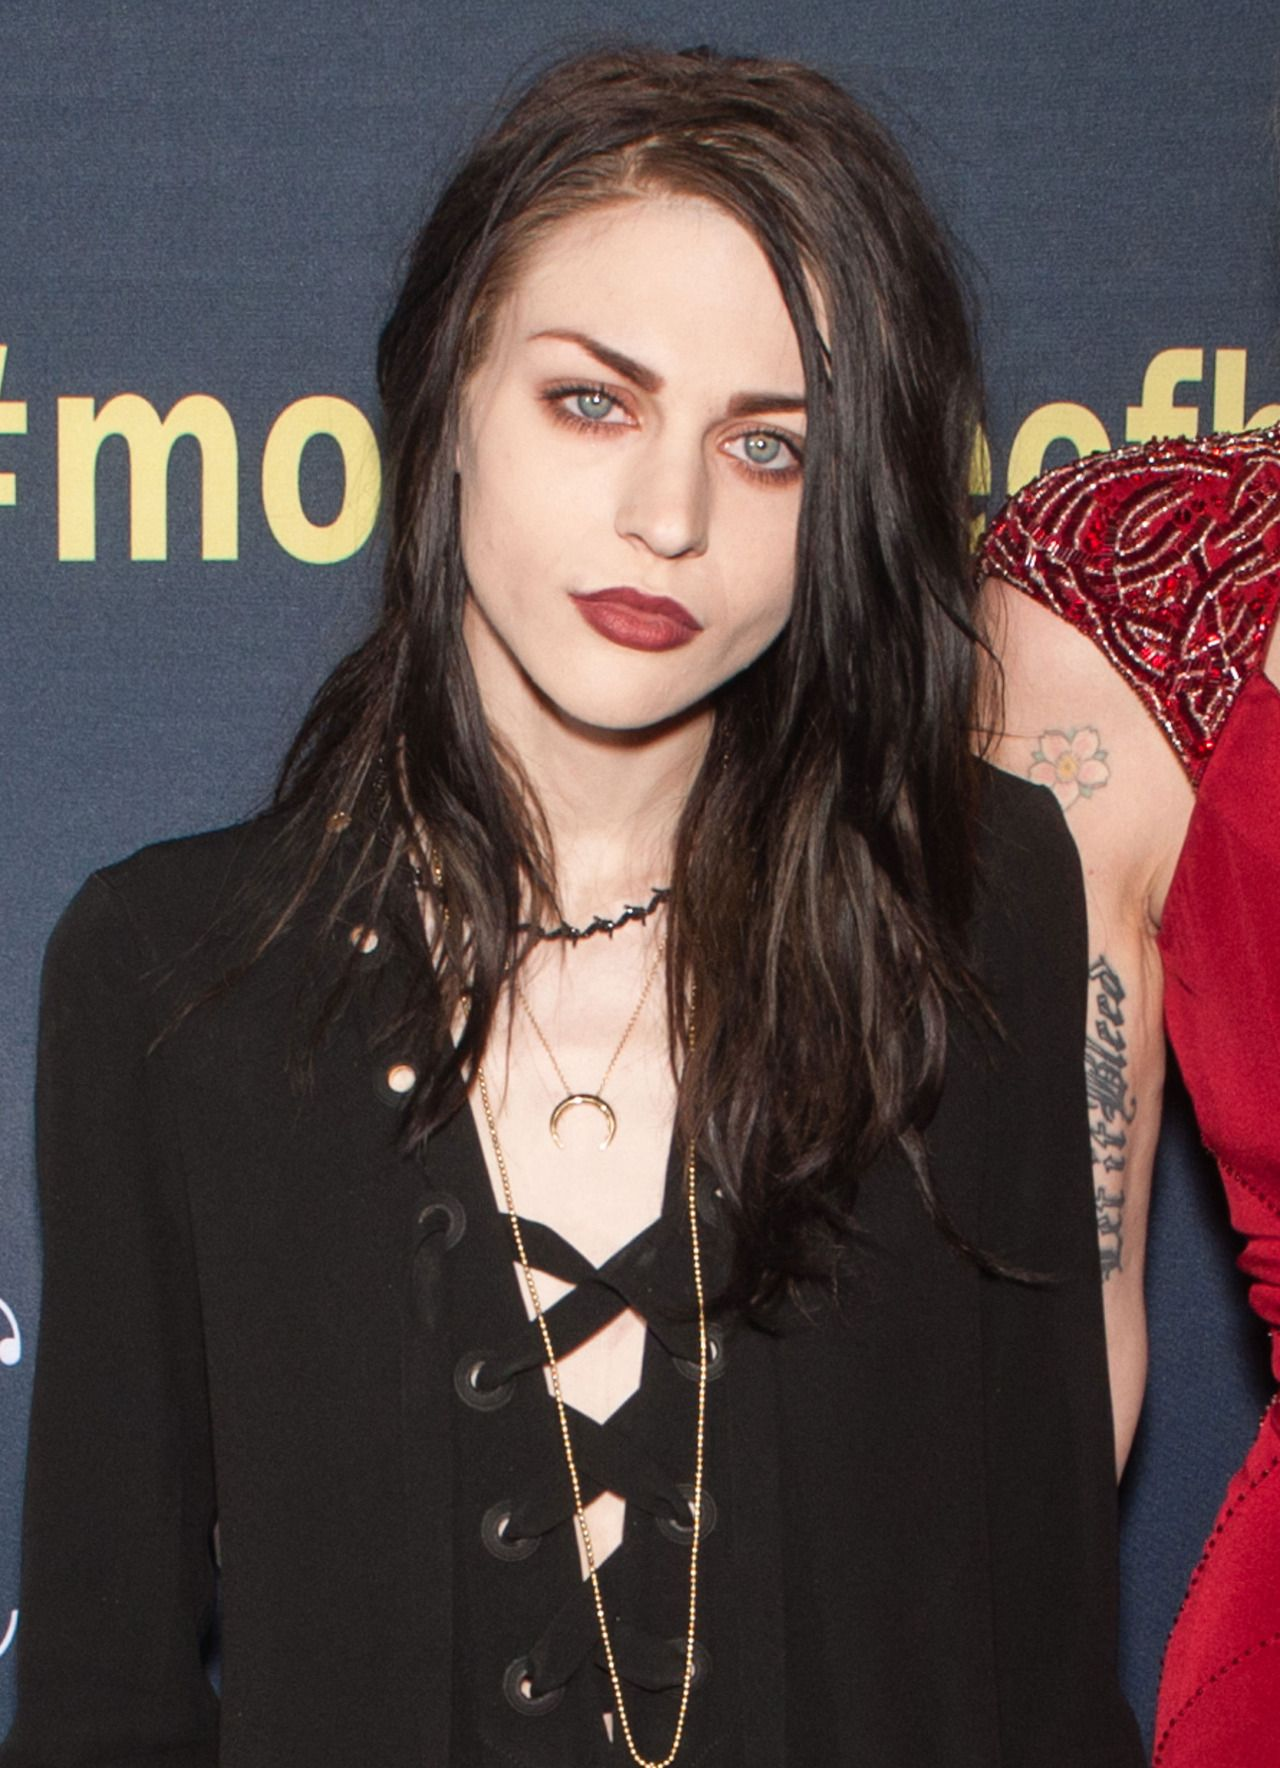 Frances Bean Cobain Gets Married But Fails To Invite Courtney Love |  Congratulations are for in order after Frances Bean Cobain tied the knot with her boyf of five years – Isiah Silvas -  in a top-secret ceremony surrounded by just a few close friends.